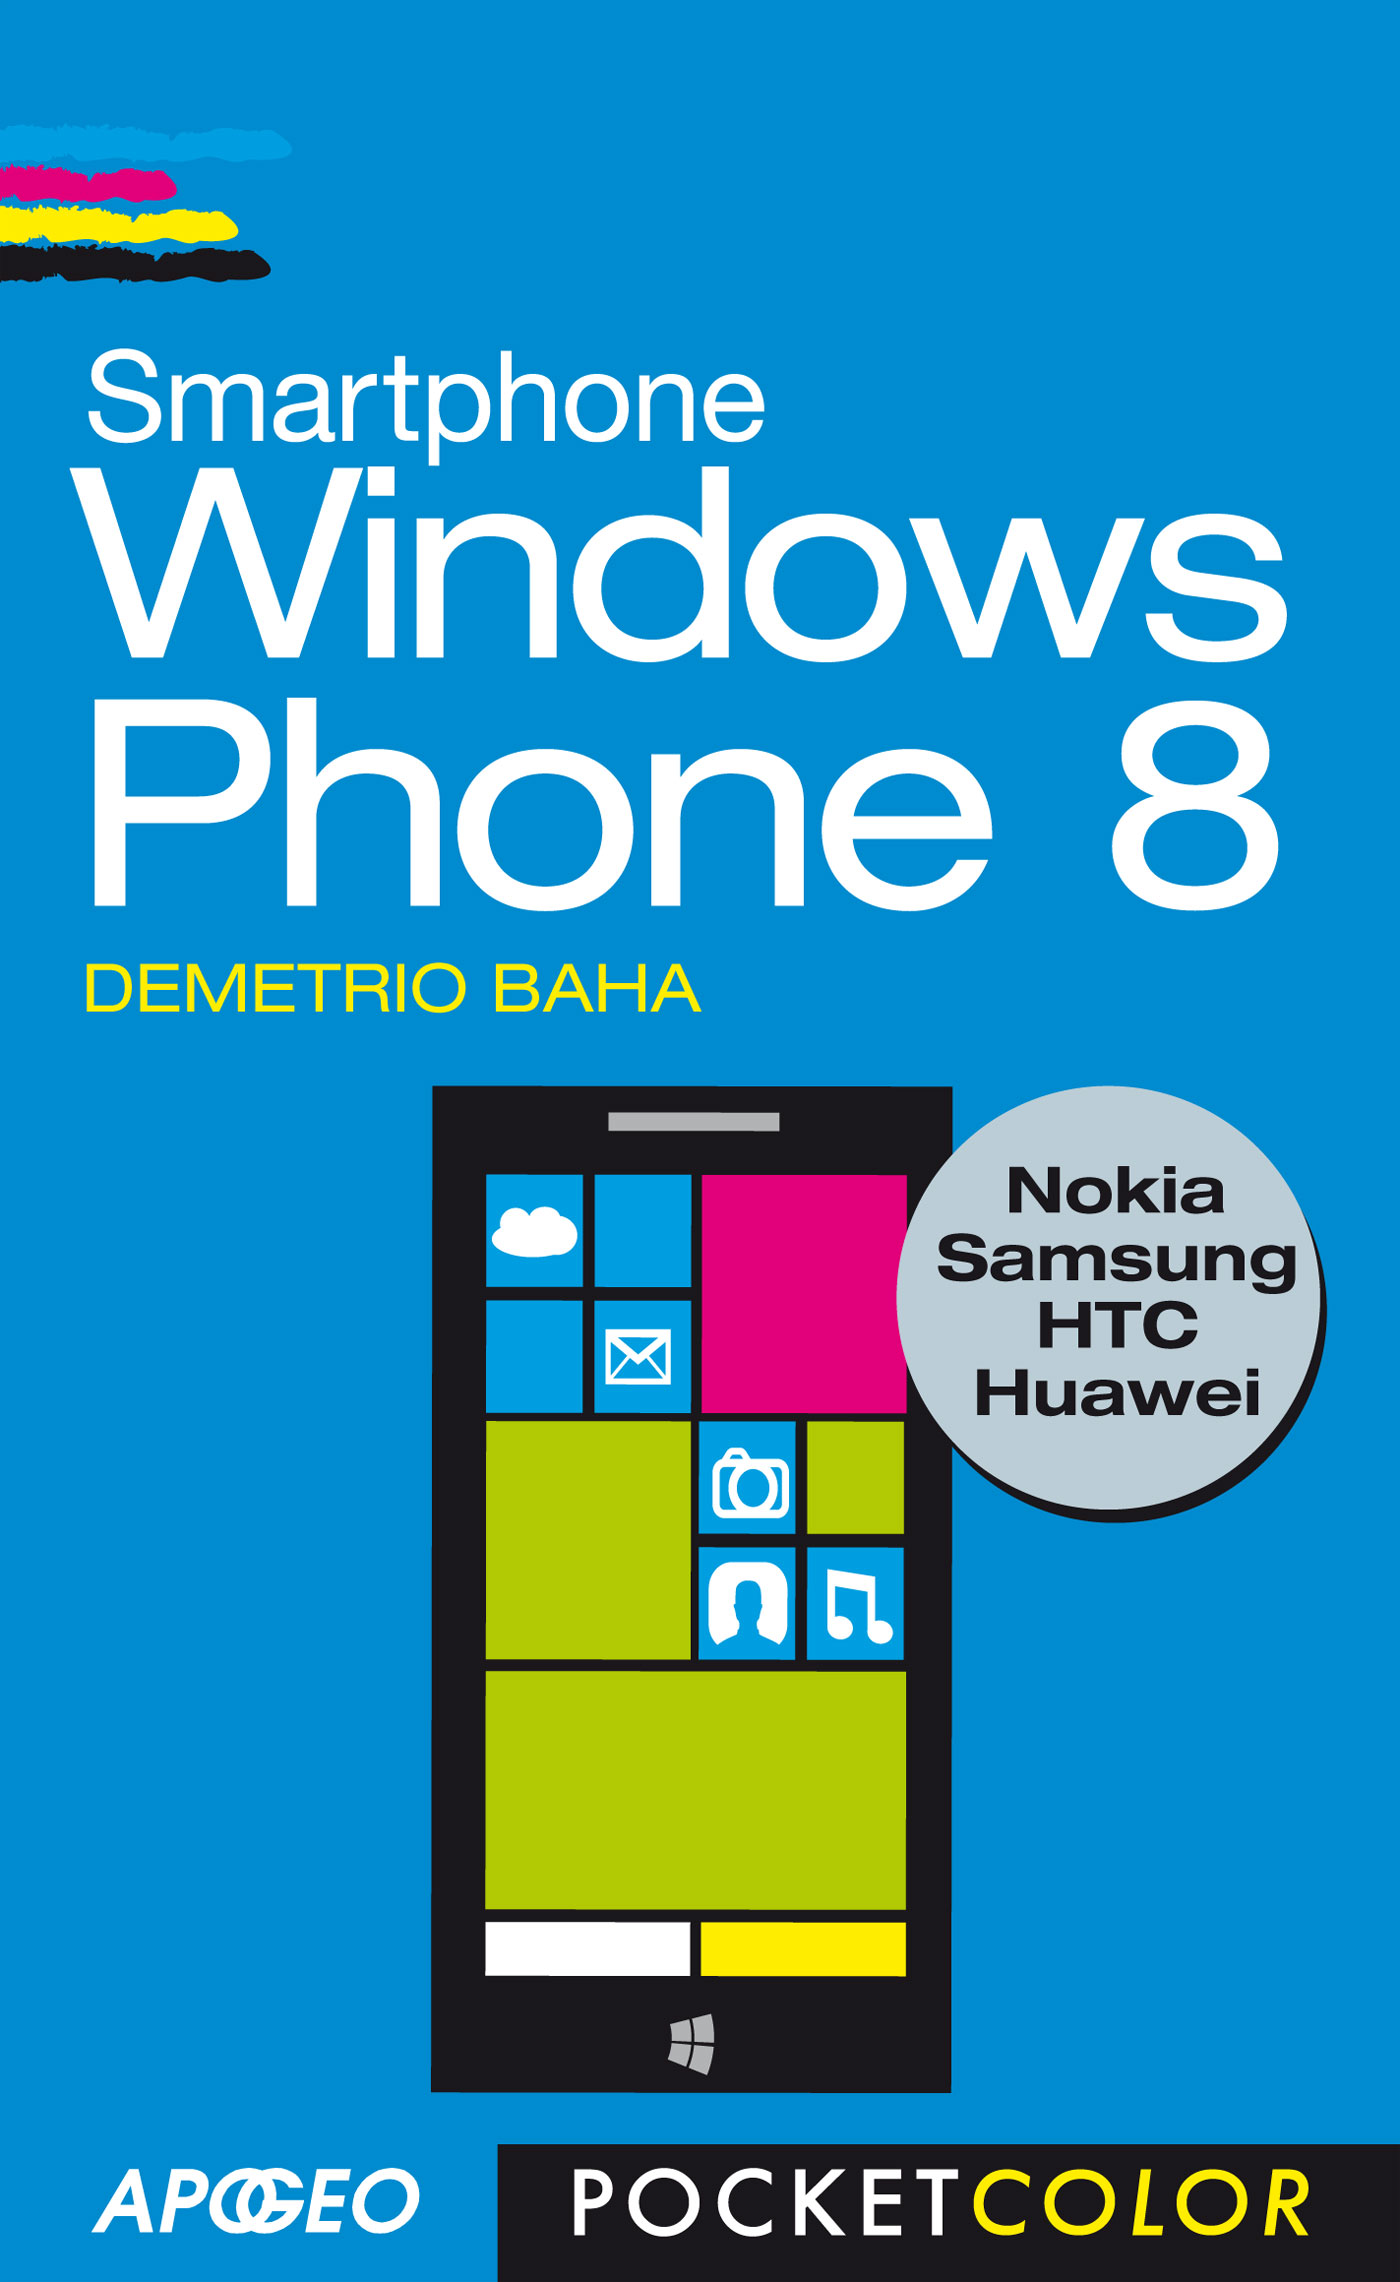 Smartphone Windows Phone 8